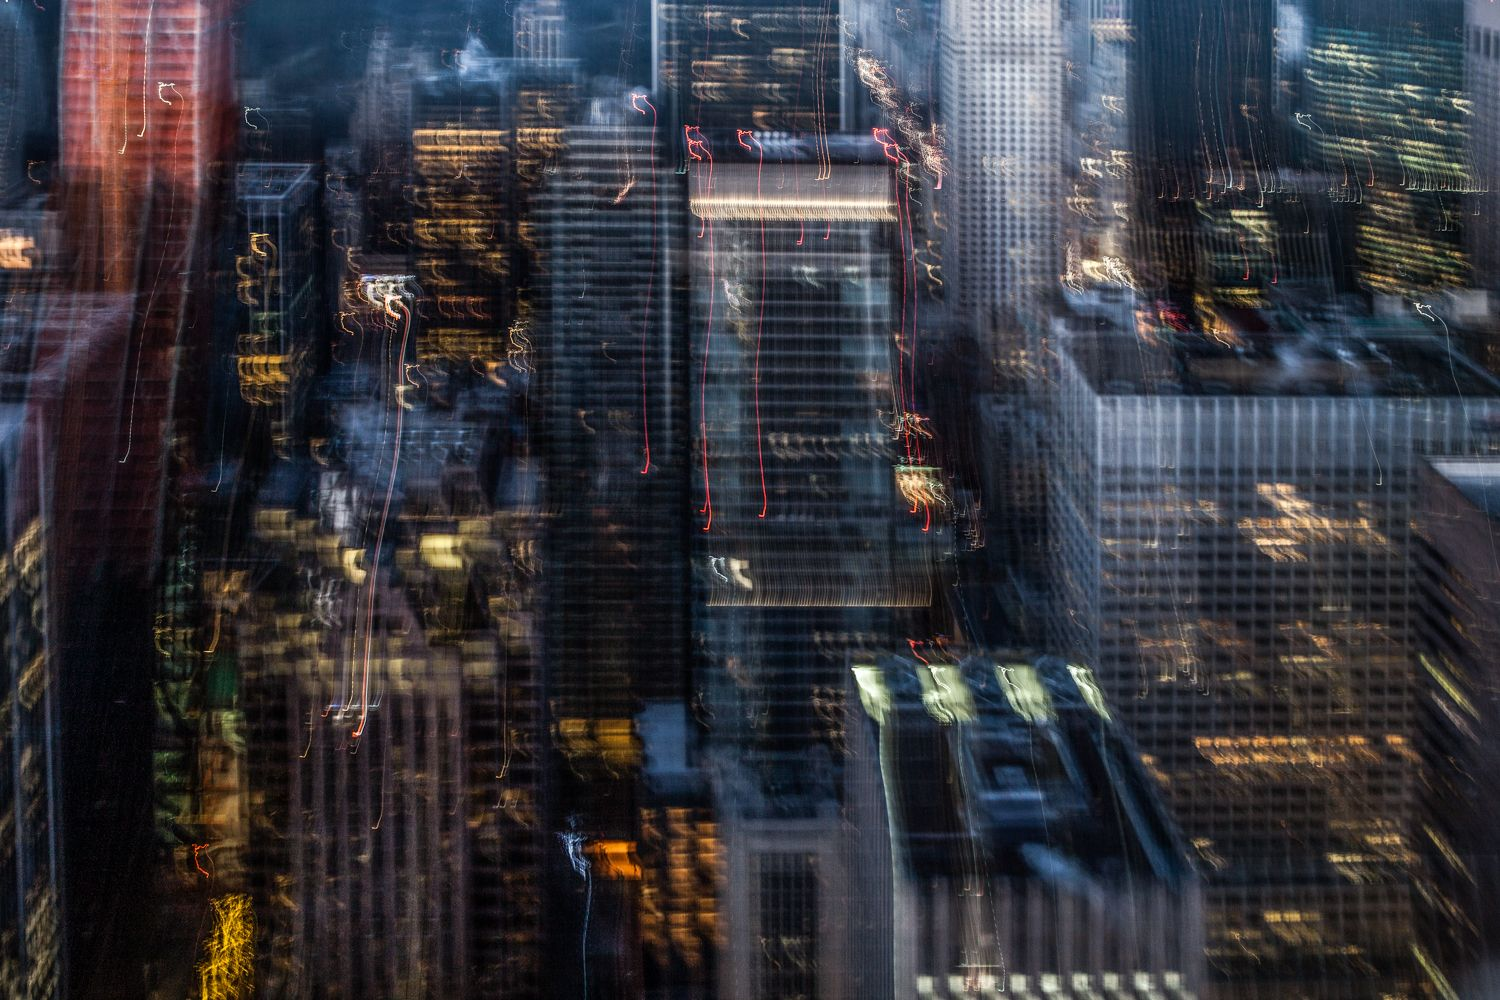 New York Dream 23,Xavier Dumoulin,Photographie contemporaine